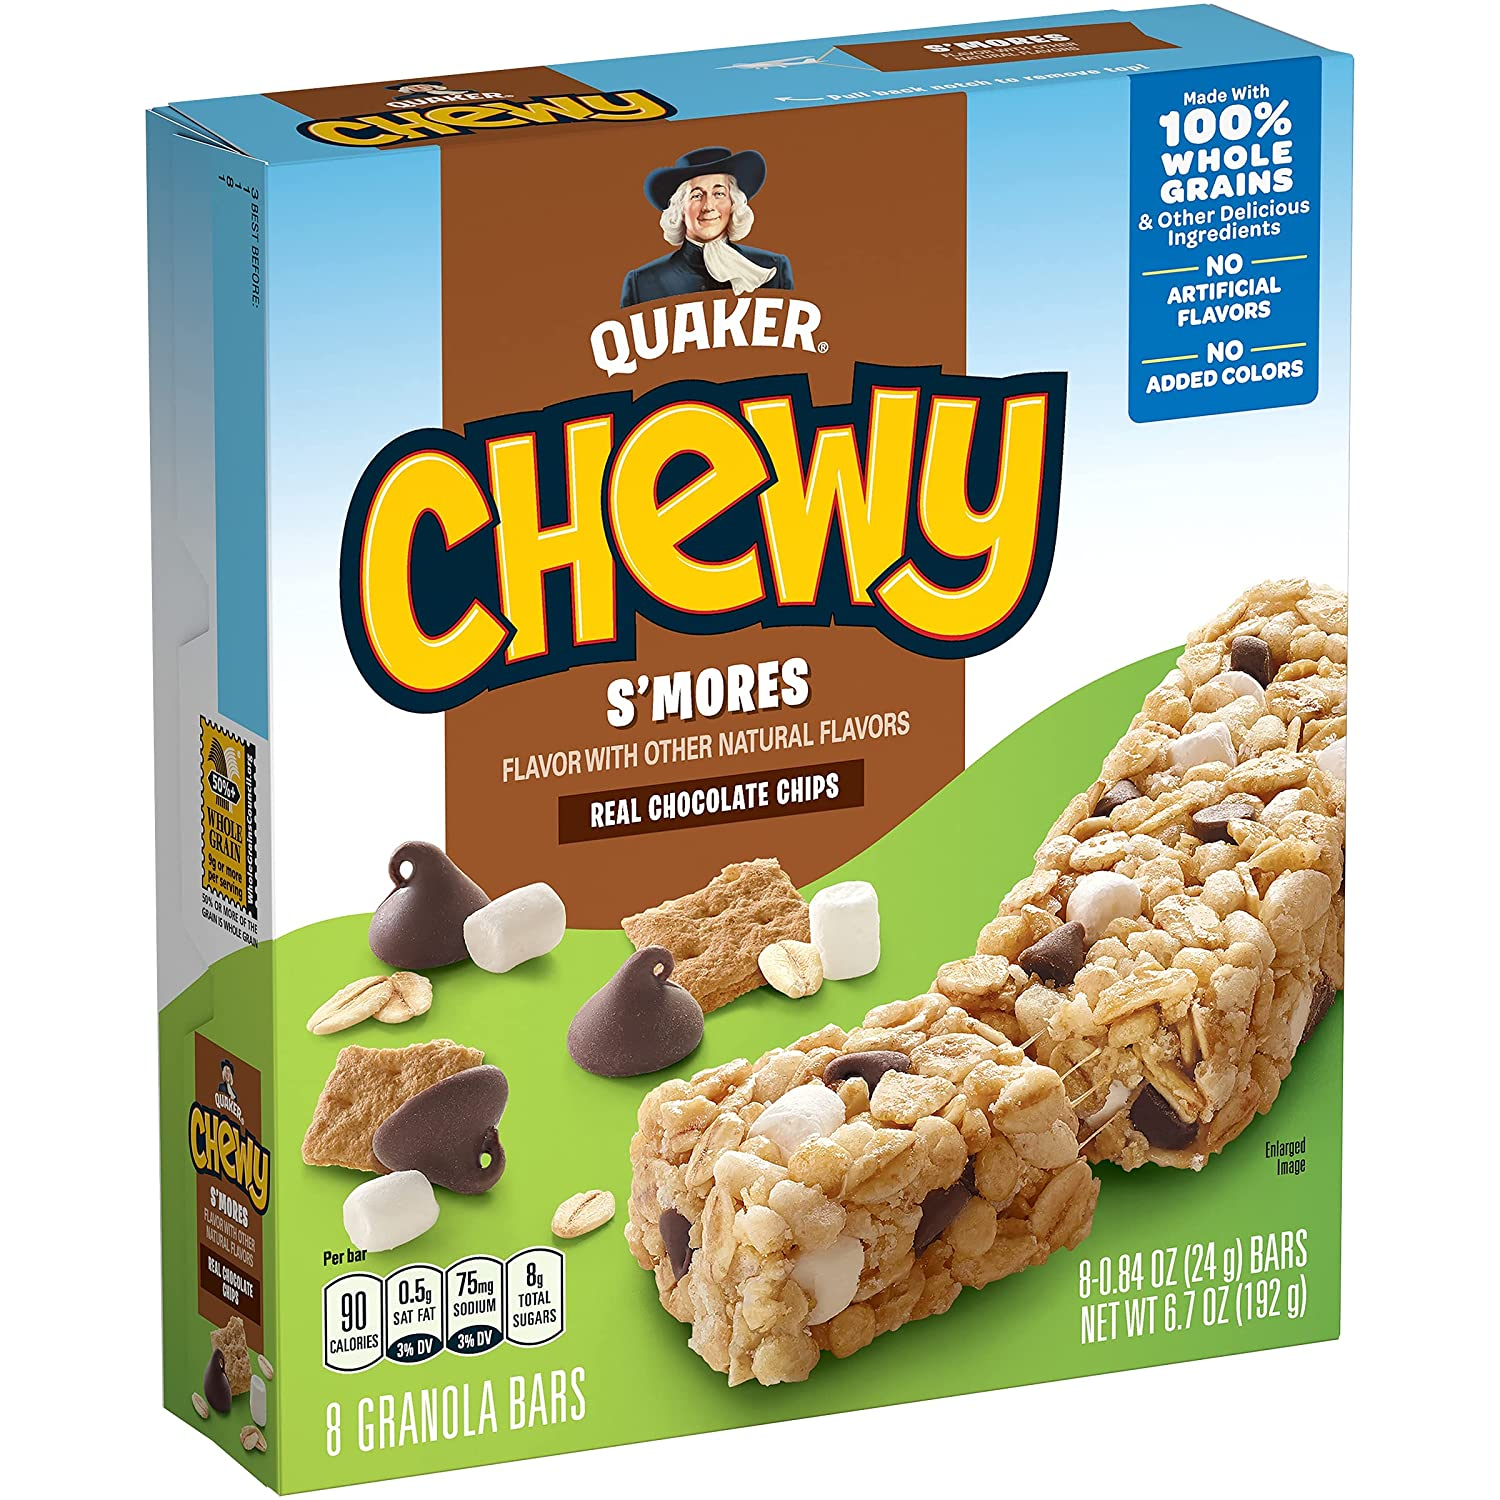 Quaker Chewy Granola Bar, S'mores, 8-Count Bars (Pack of 12)